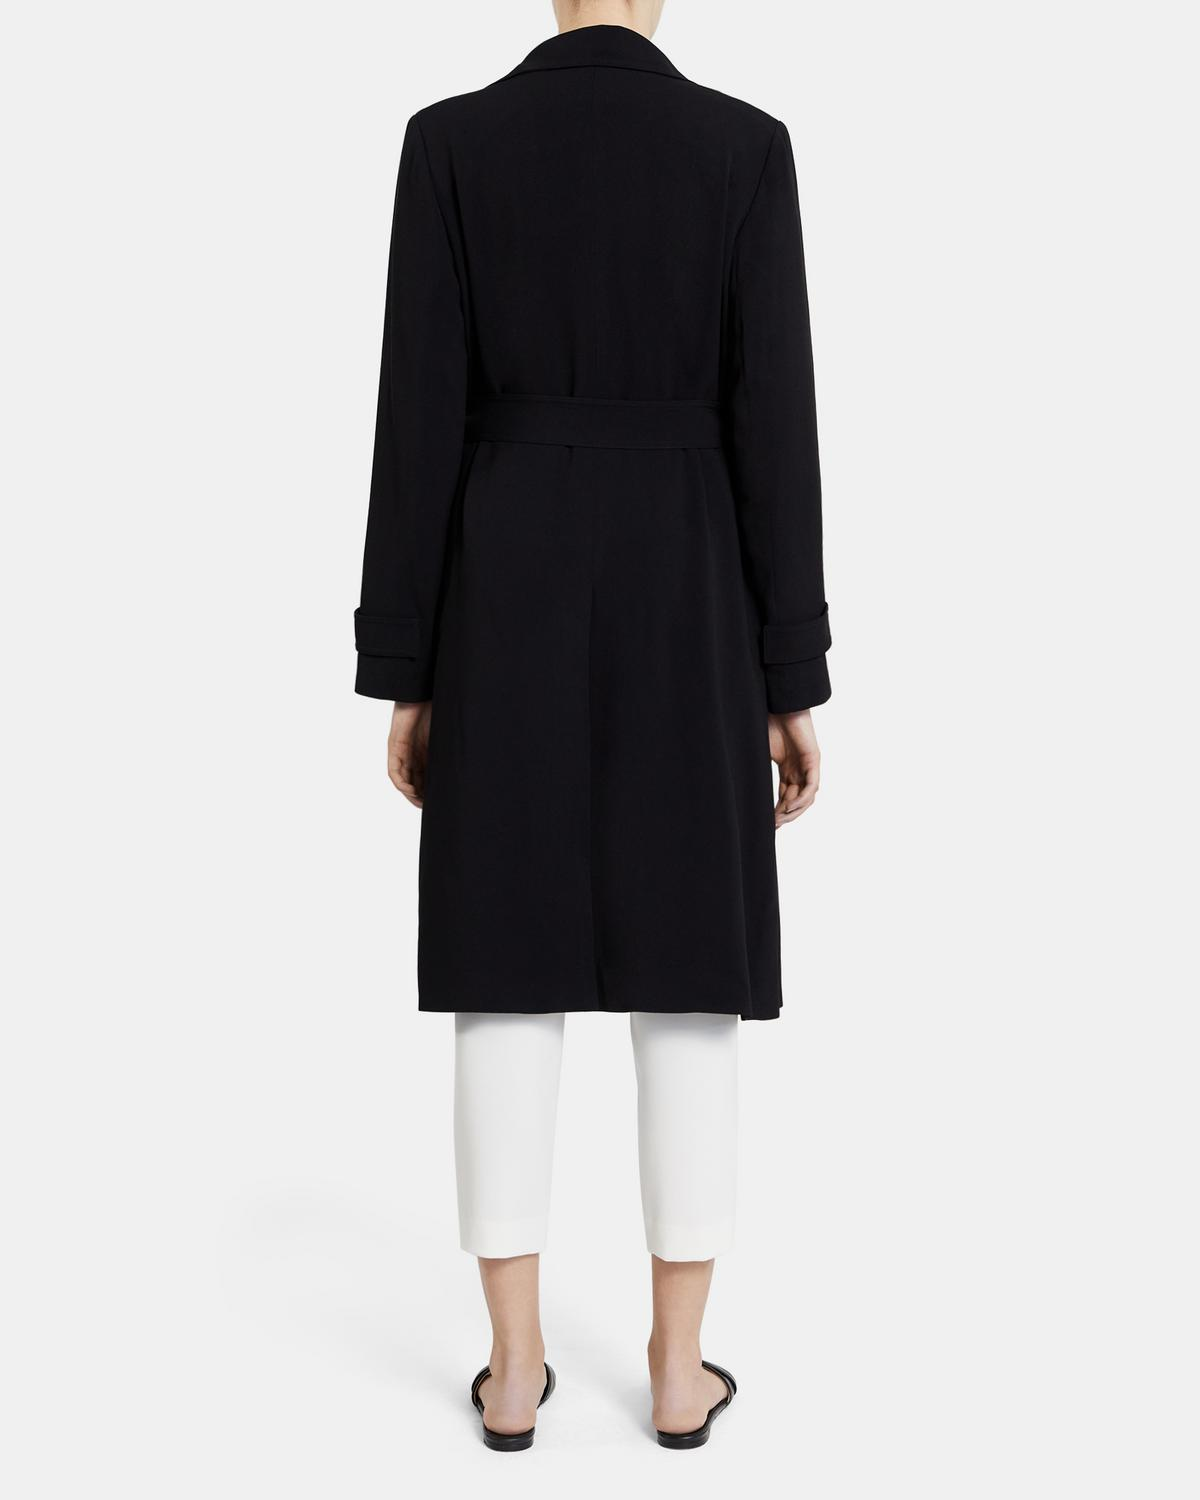 Oaklane Trench Coat in Rosina Crepe 0 - click to view larger image